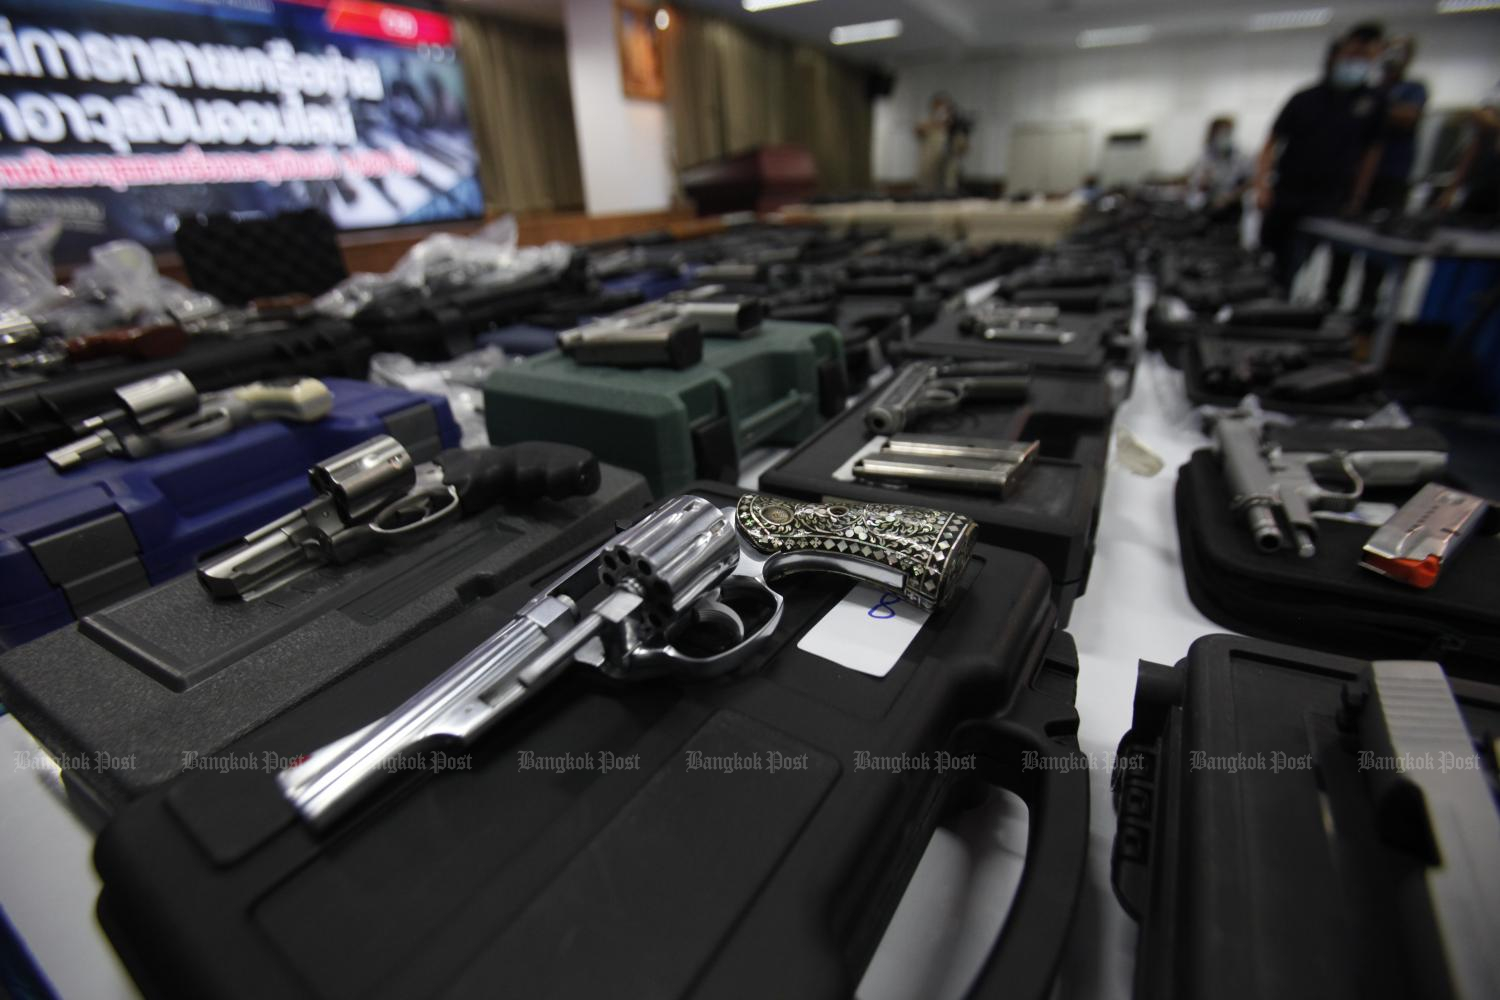 Online arms trade in CSD sights